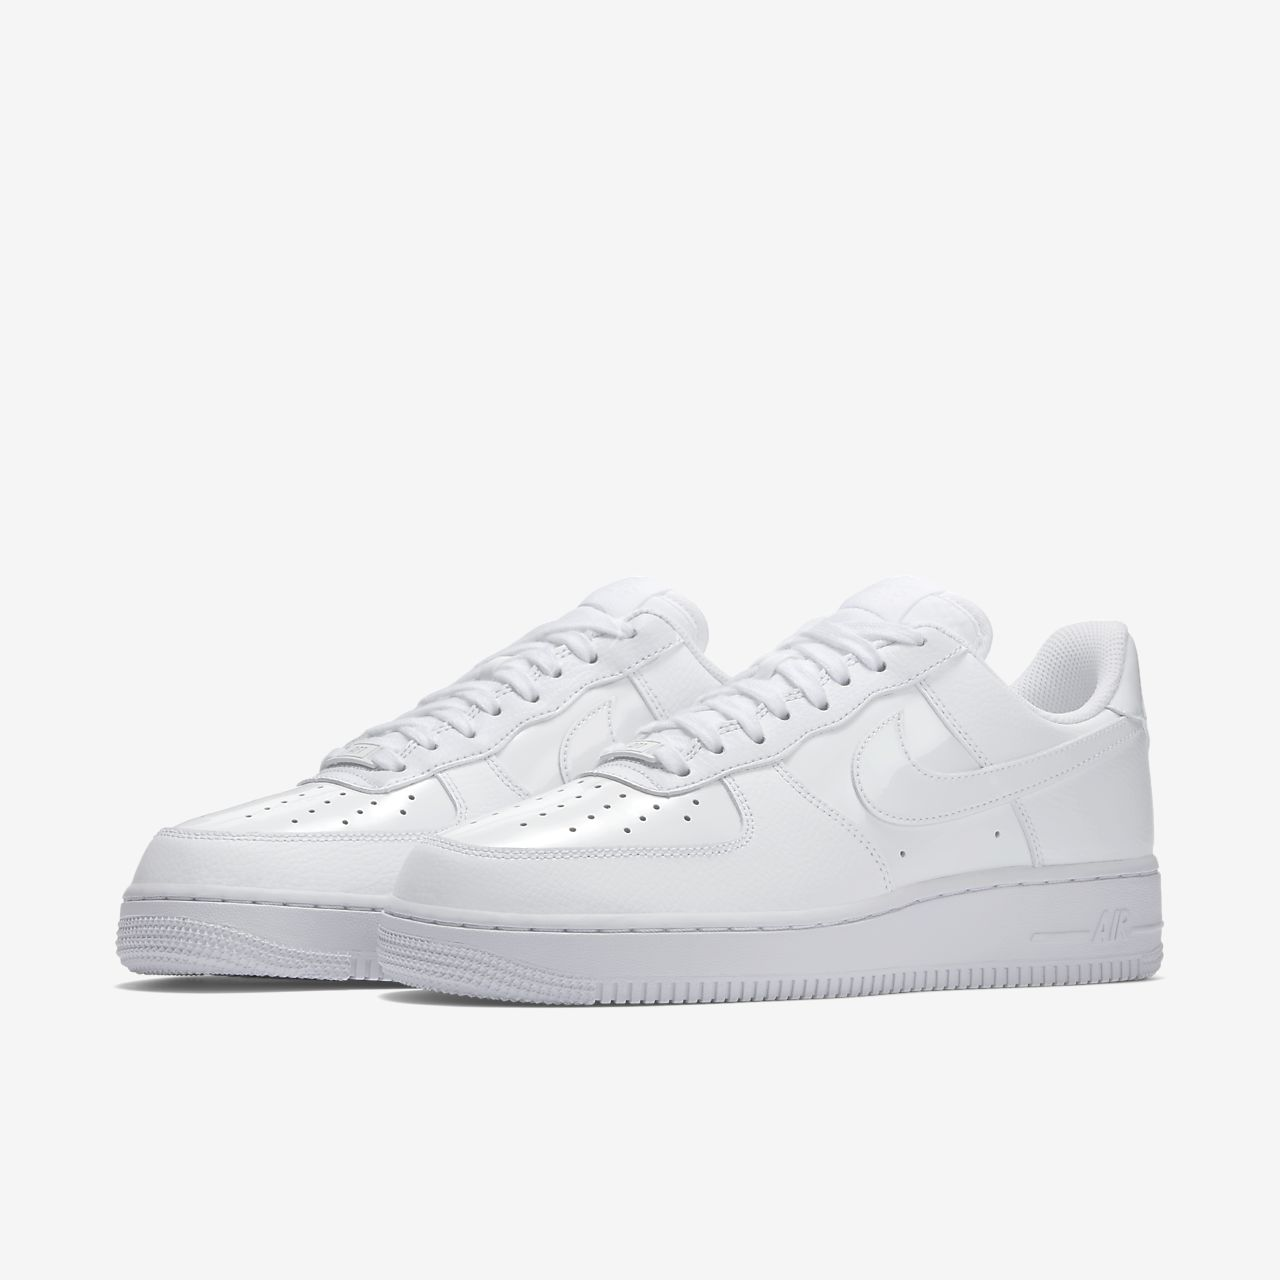 ... Chaussure Nike Air Force 1 '07 Patent pour Femme